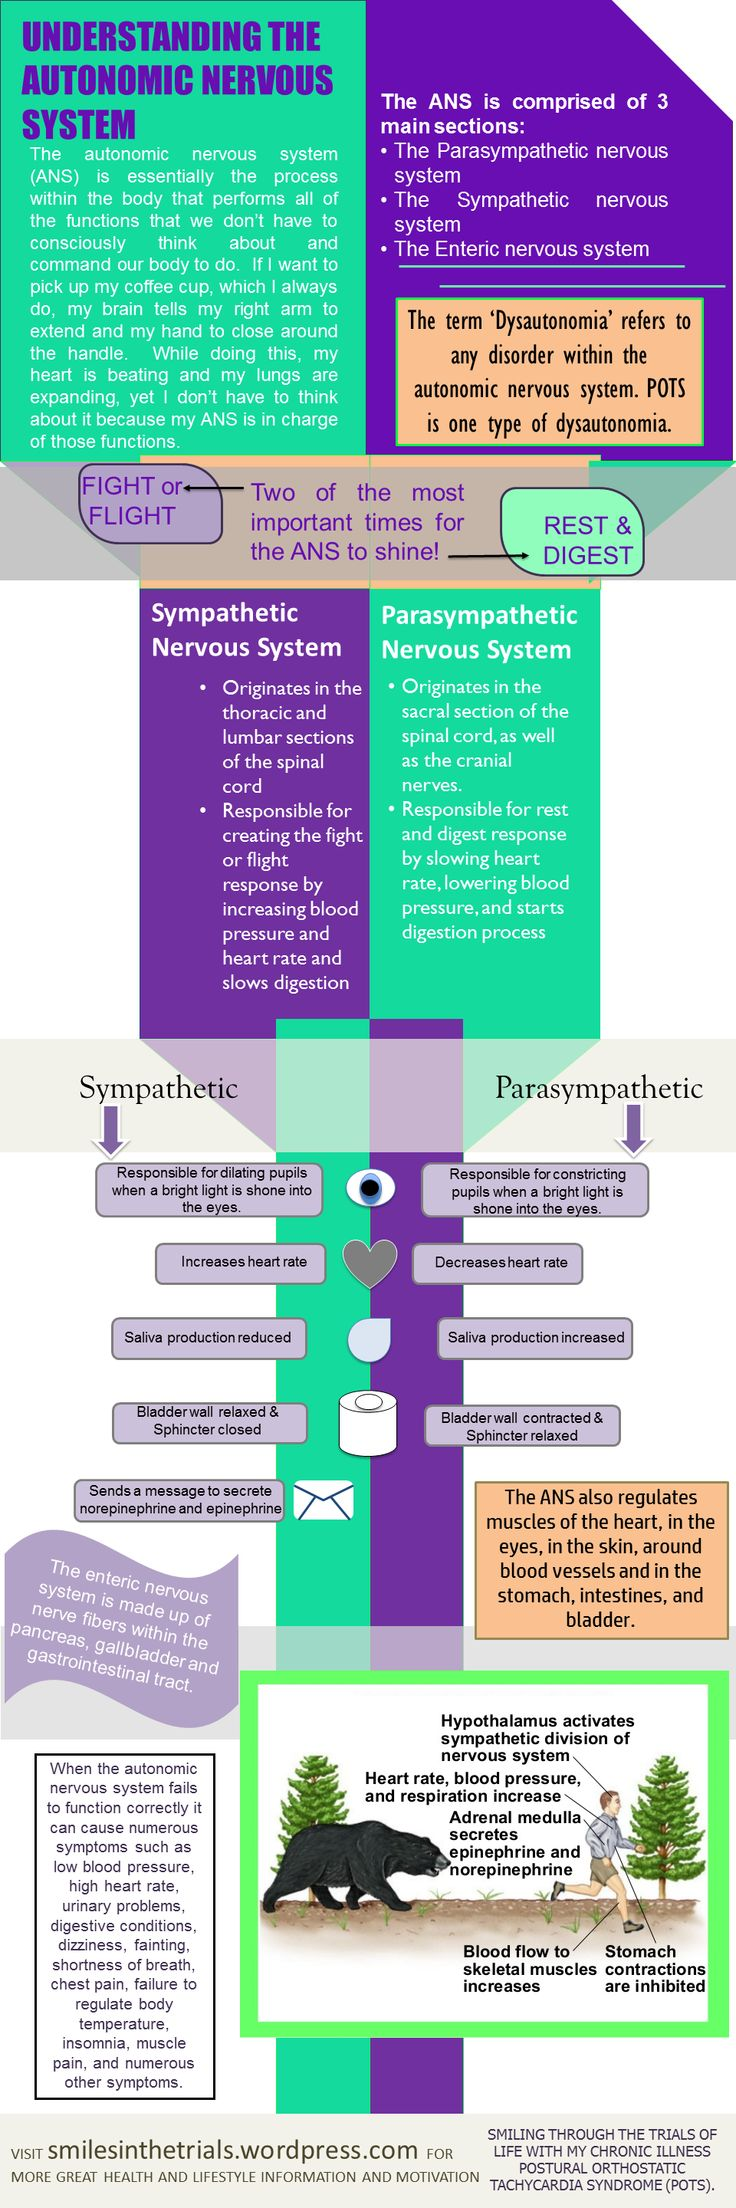 Autonomic Nervous System Infographic. All about dysautonomia. Follow along on my blog about my life with POTS  ( postural orthostatic tachycardia syndrome).